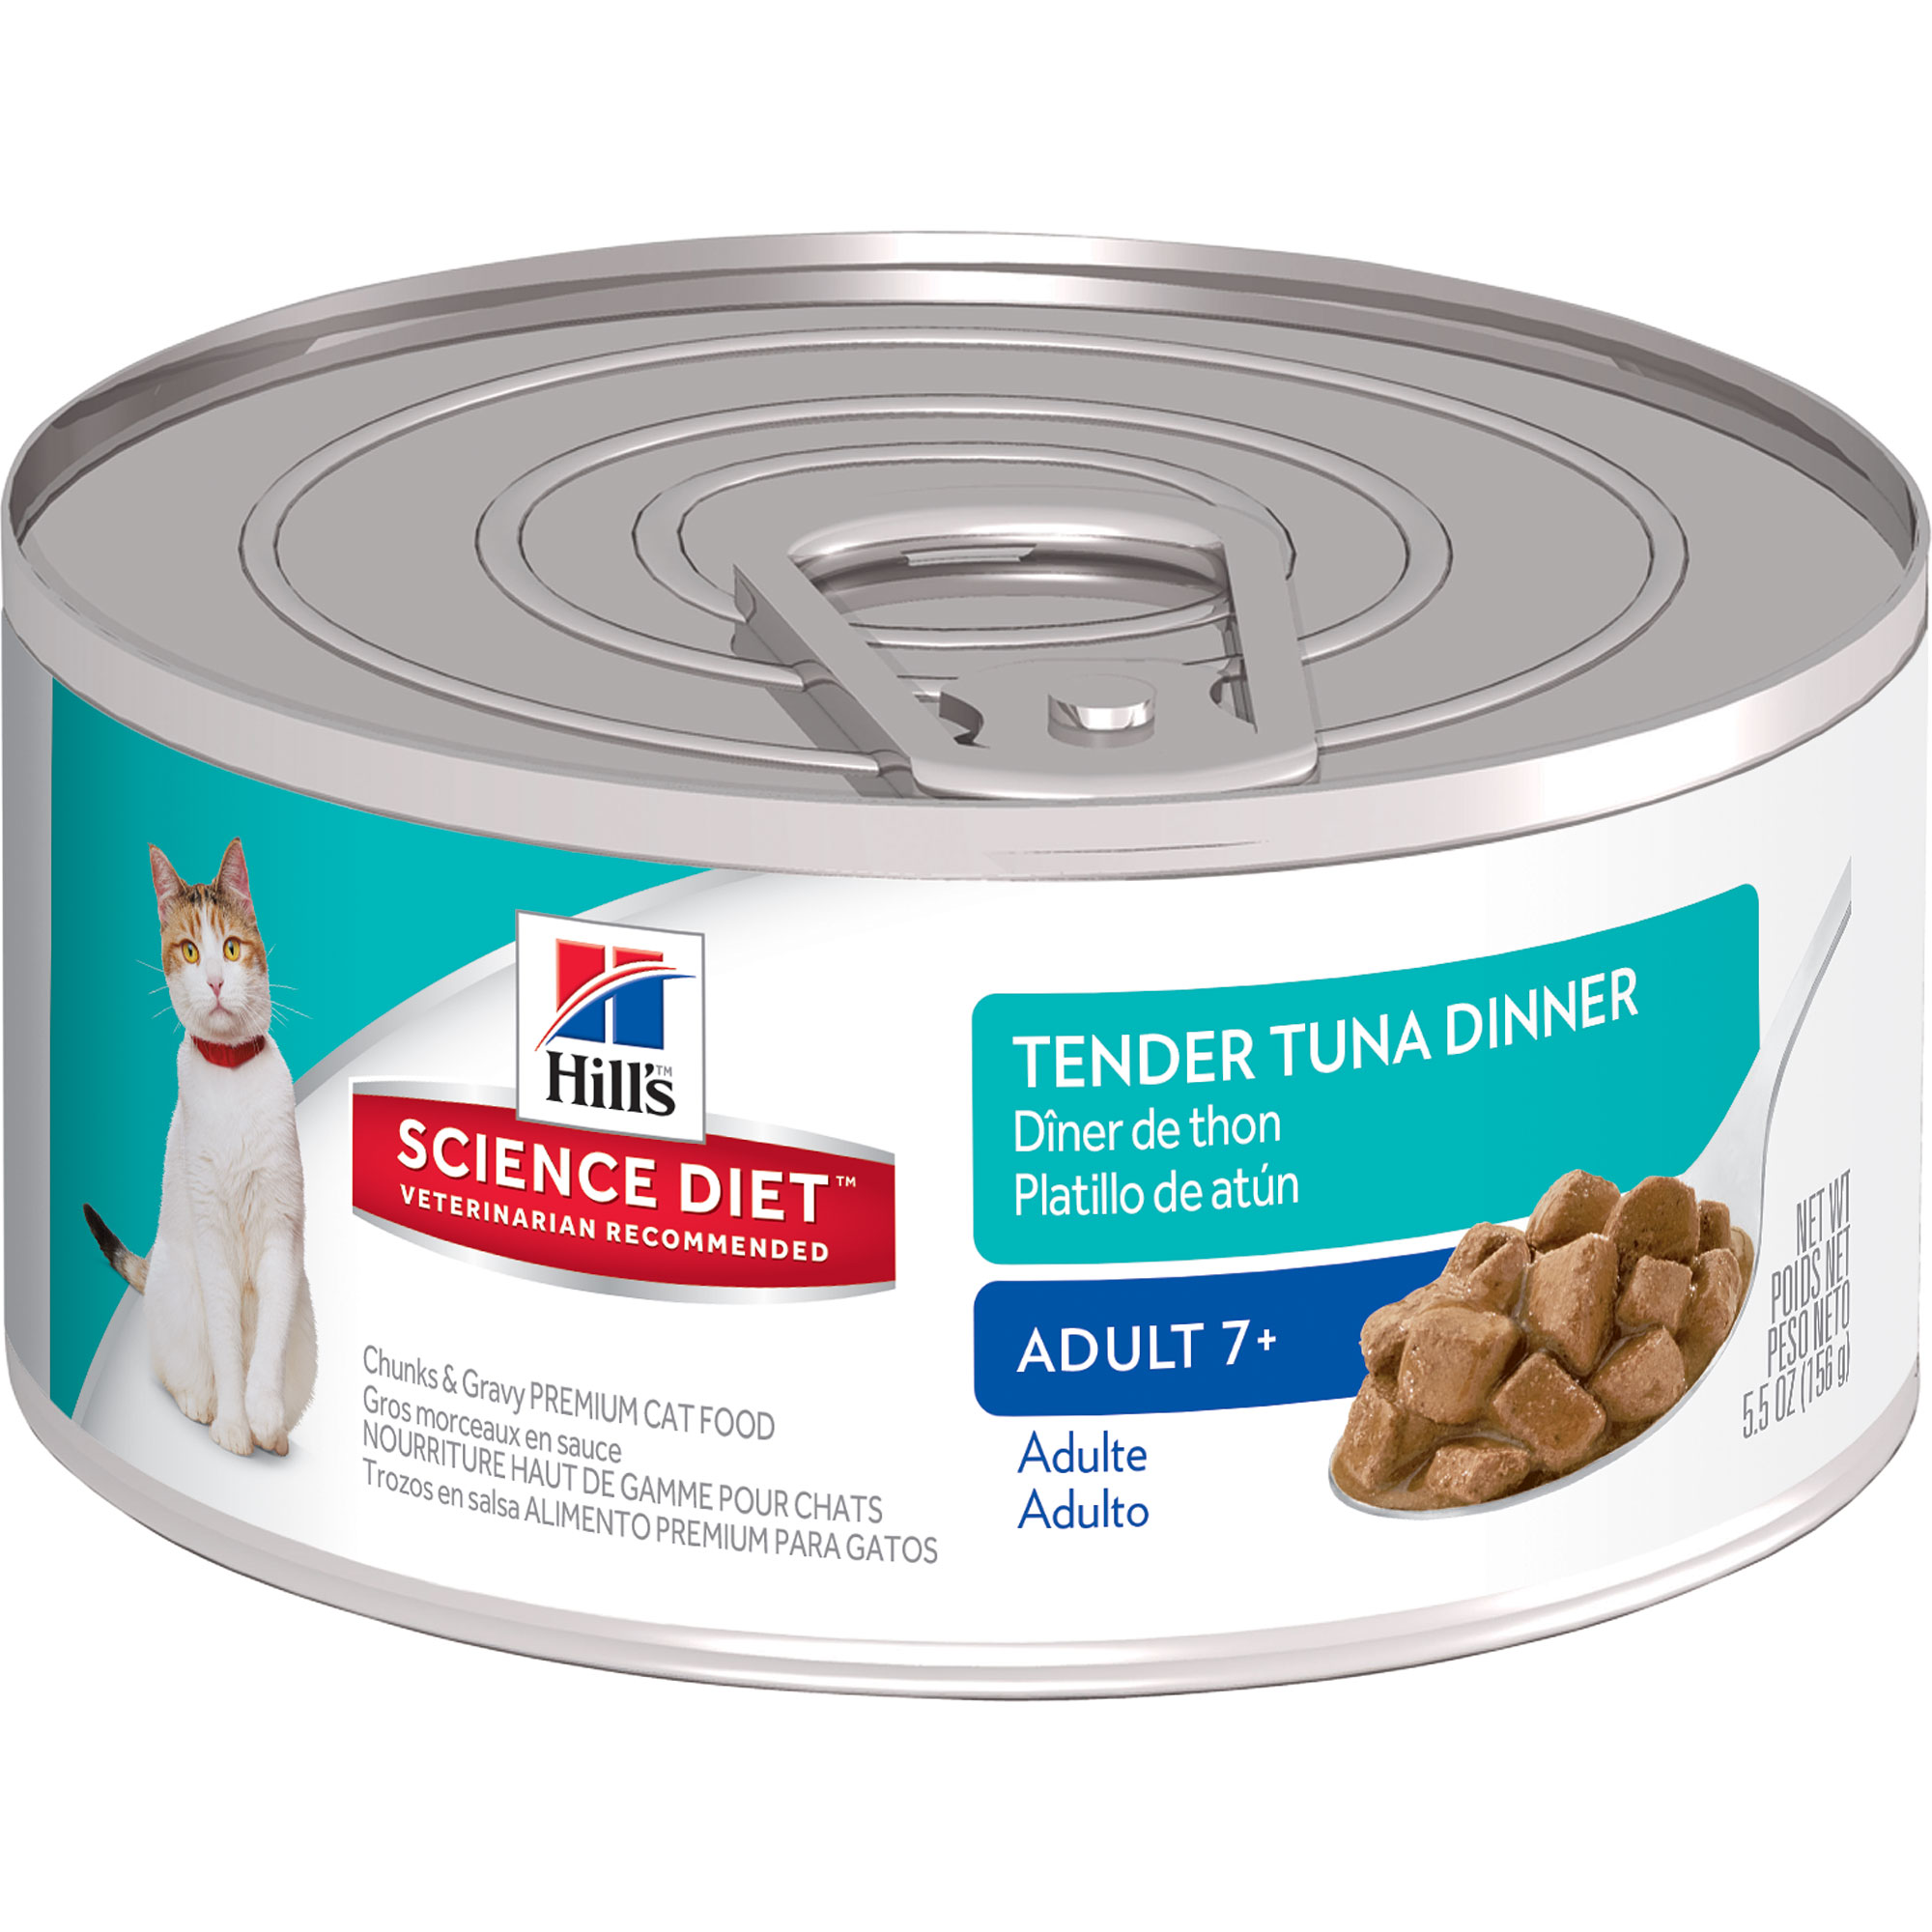 Hill's Science Diet (Get $5 back for every $20 spent) Adult 7+ Tender Tuna Dinner Chunks & Gravy Canned Cat Food, 5.5 oz, 24-pack